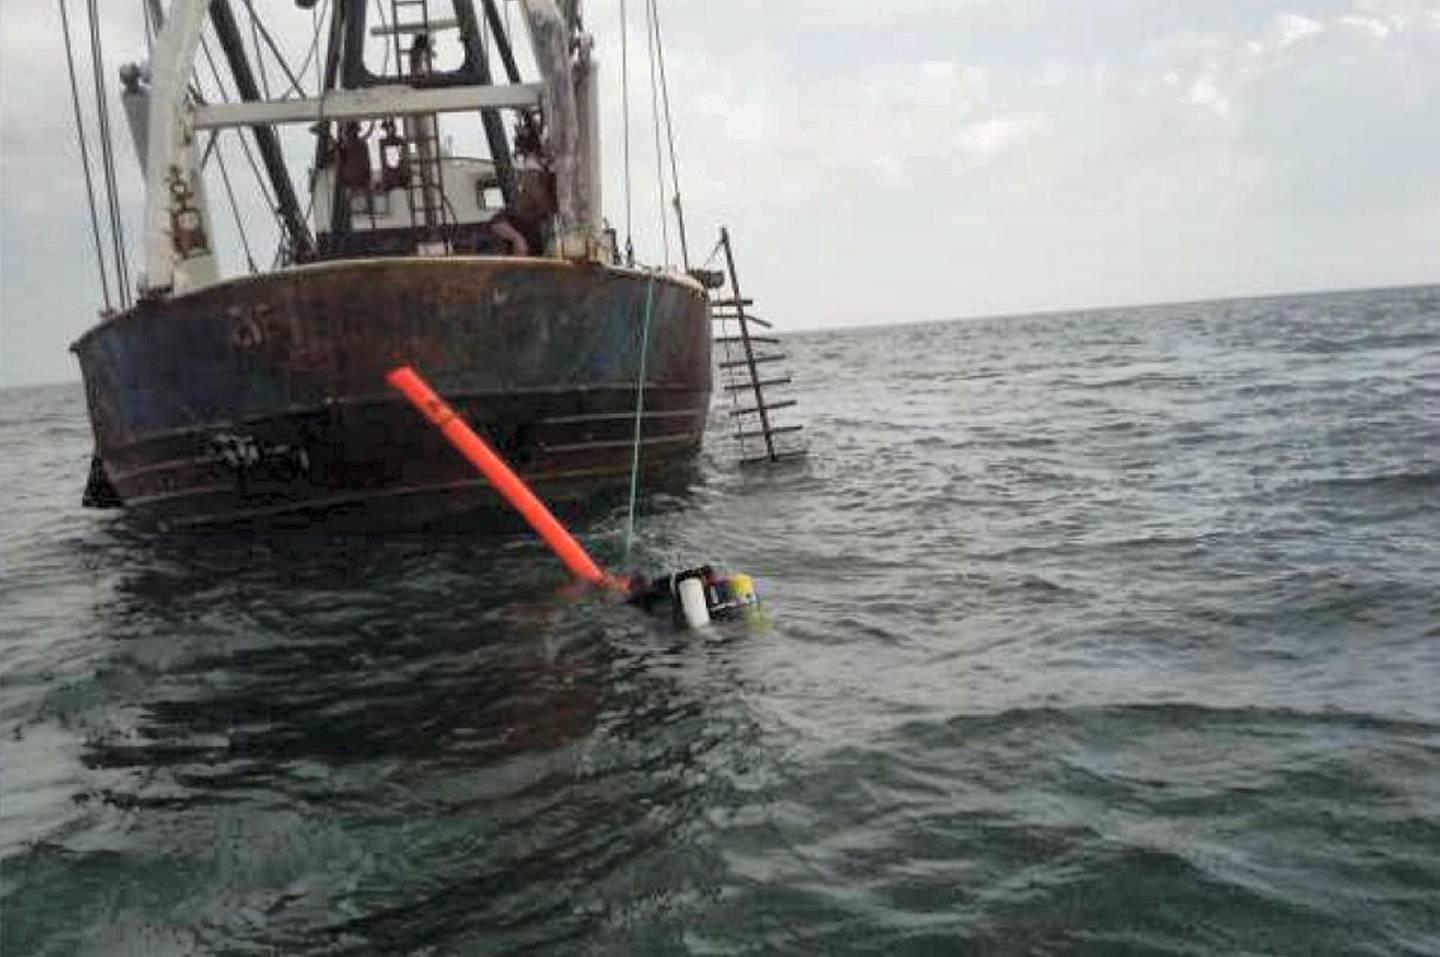 French surveillance officers photographed Ingram diving from De Bounty. (Handout/Kent Police)